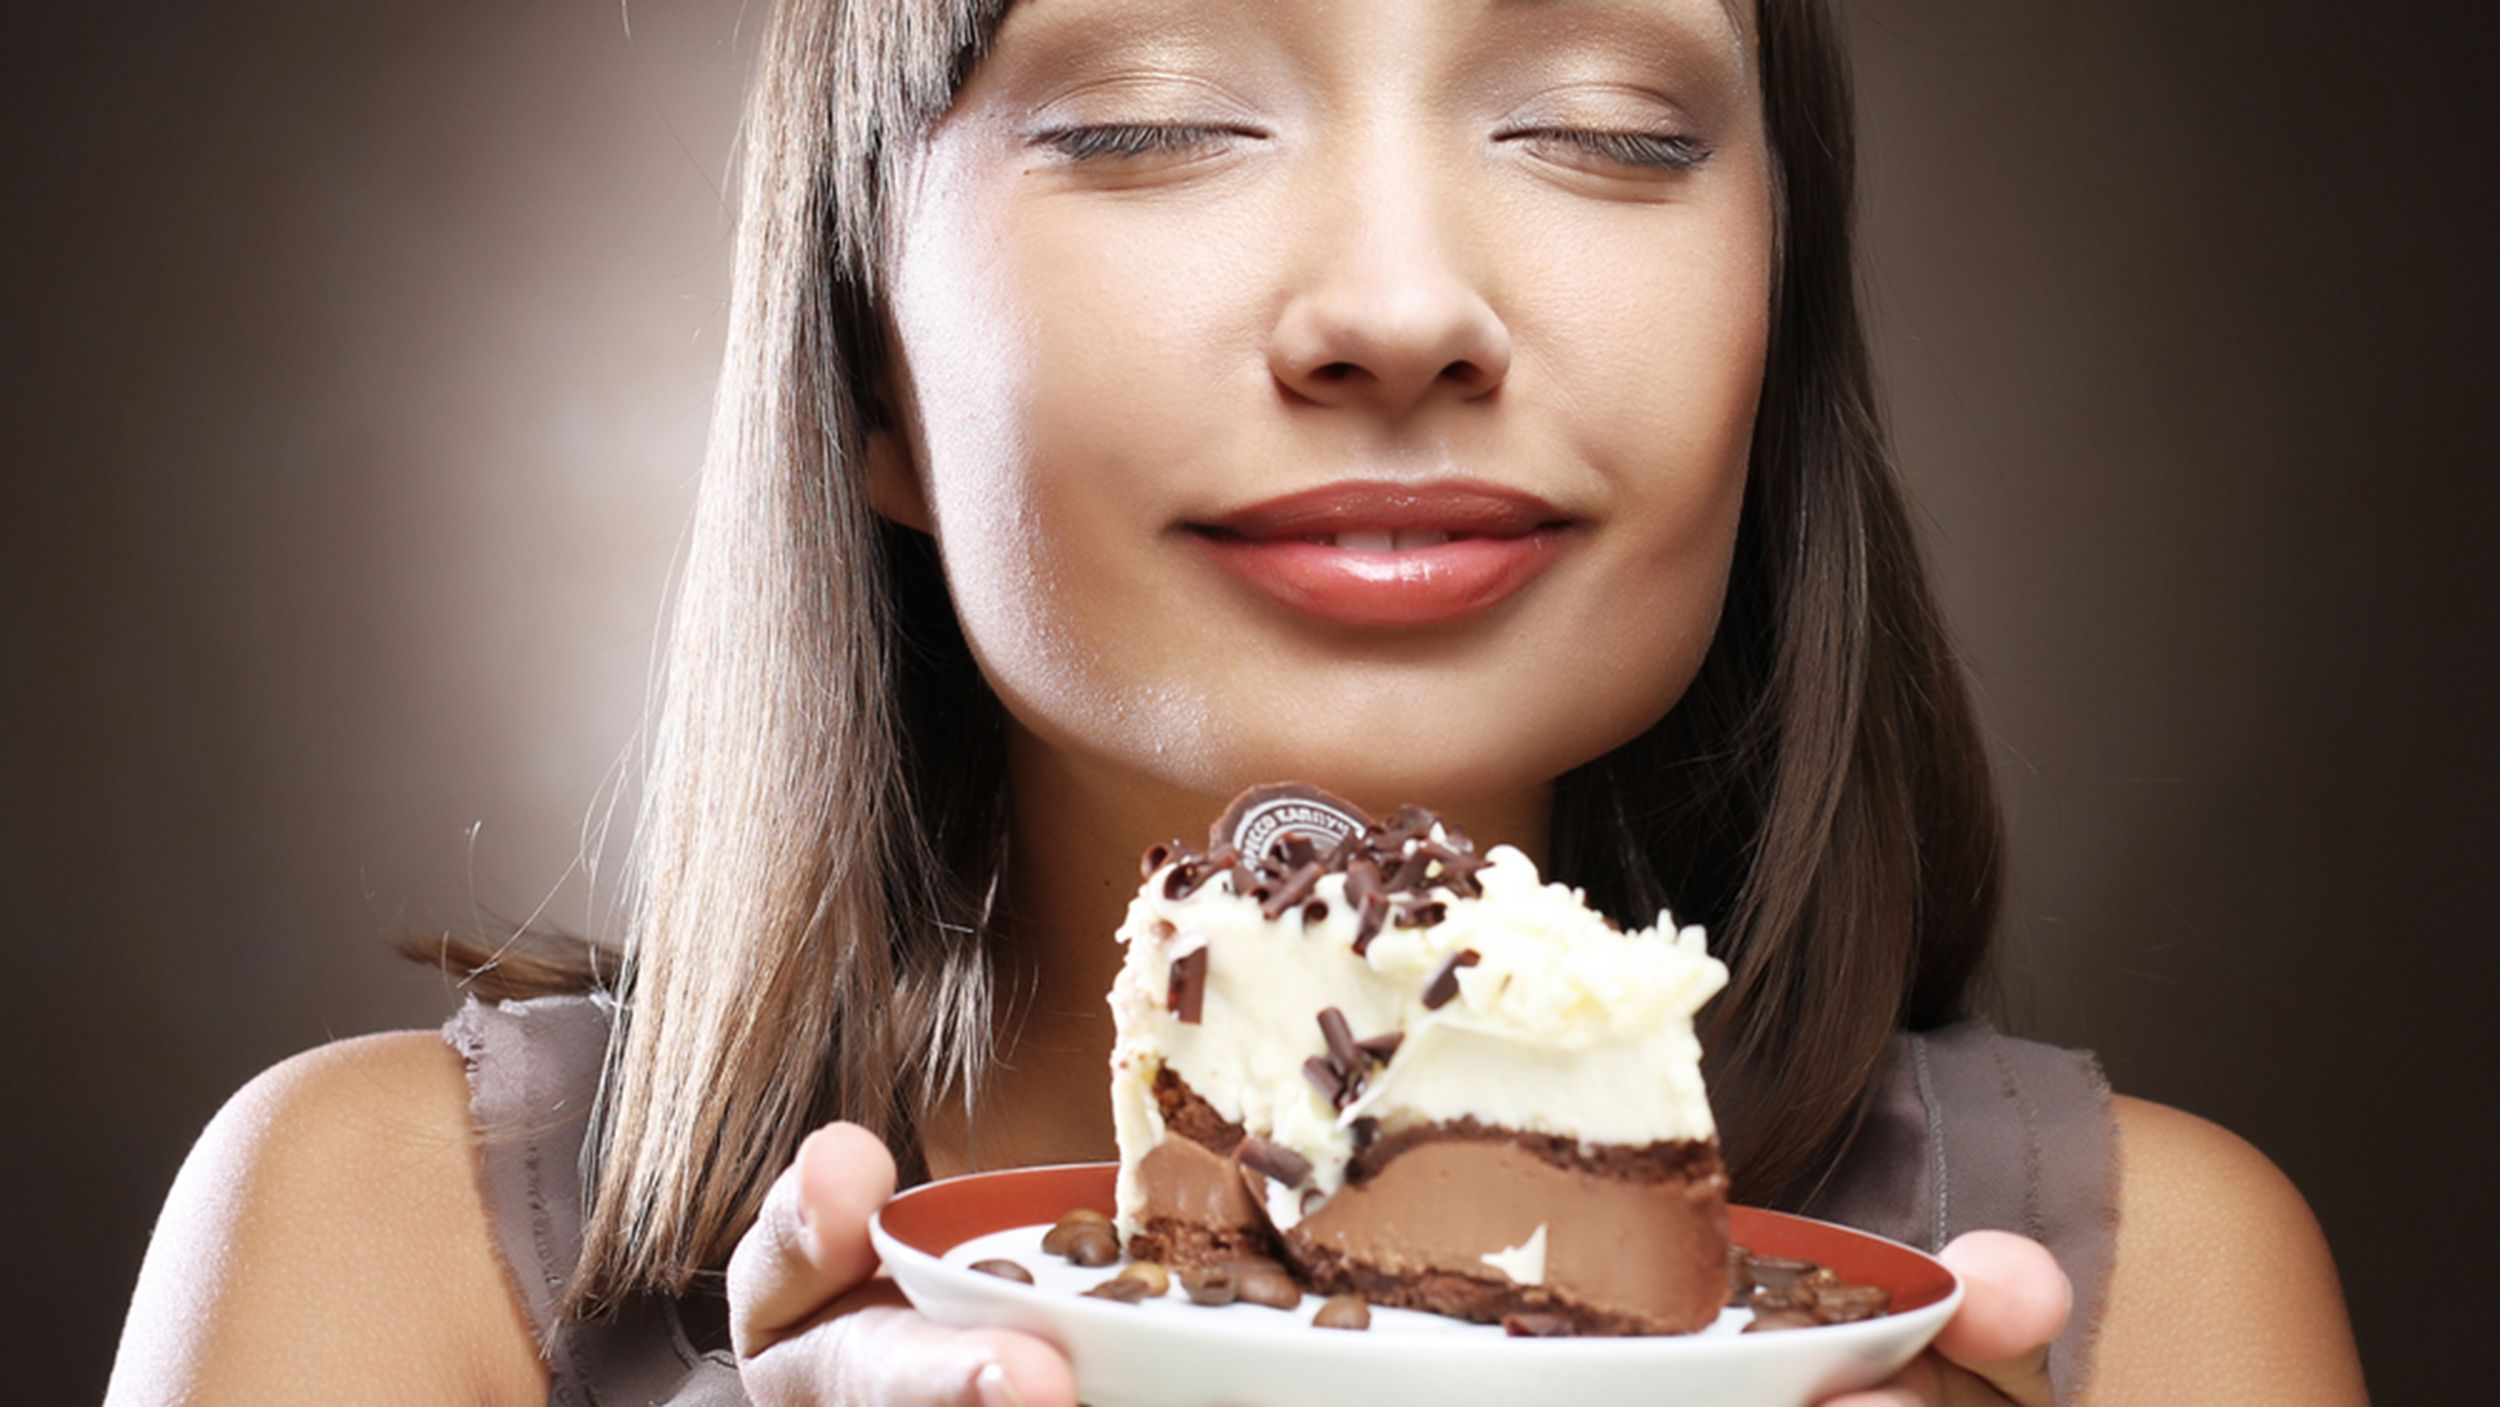 Why do only some of us crave sweets? Study reveals tastes go beyond buds